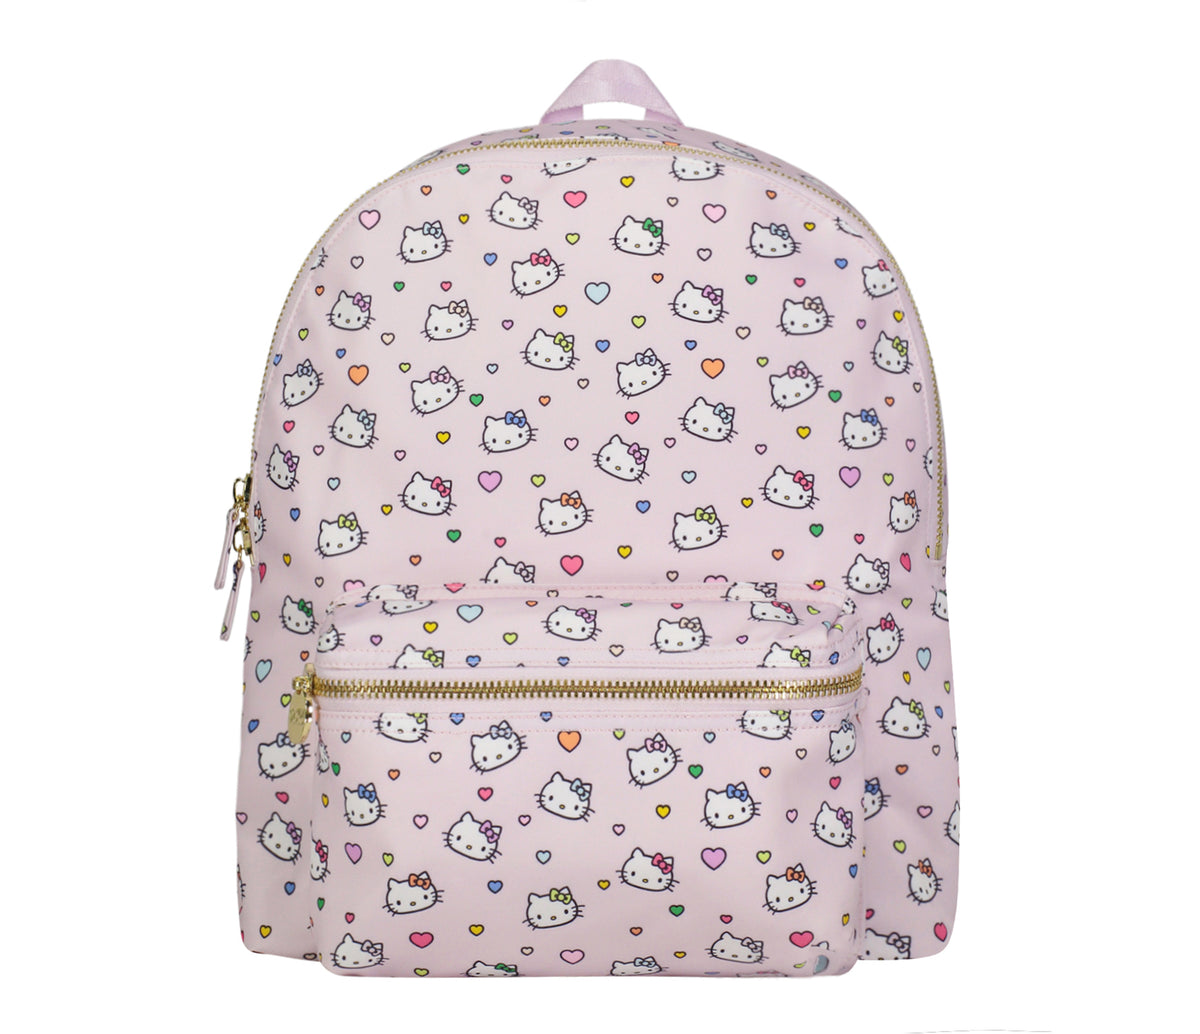 Stoney Clover Lane x Hello Kitty Hearts Backpack